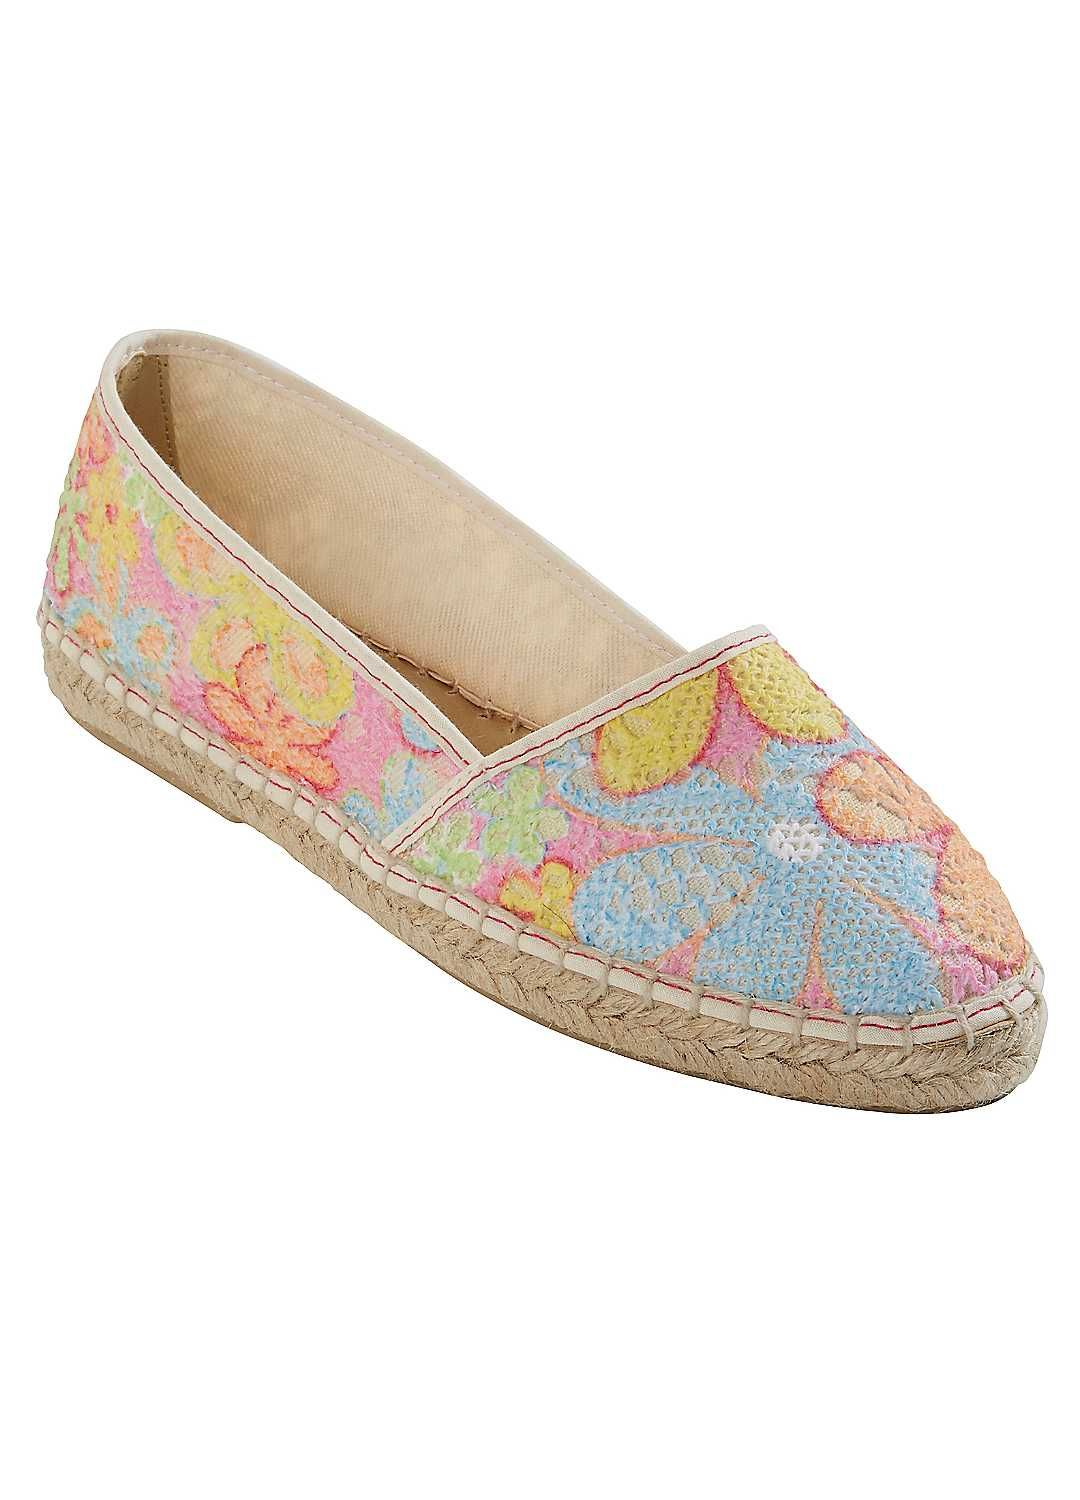 f47bd78d4 Spanish Lace Flat Espadrille Pumps - Get ready for summer with these  lightweight espadrille pumps in